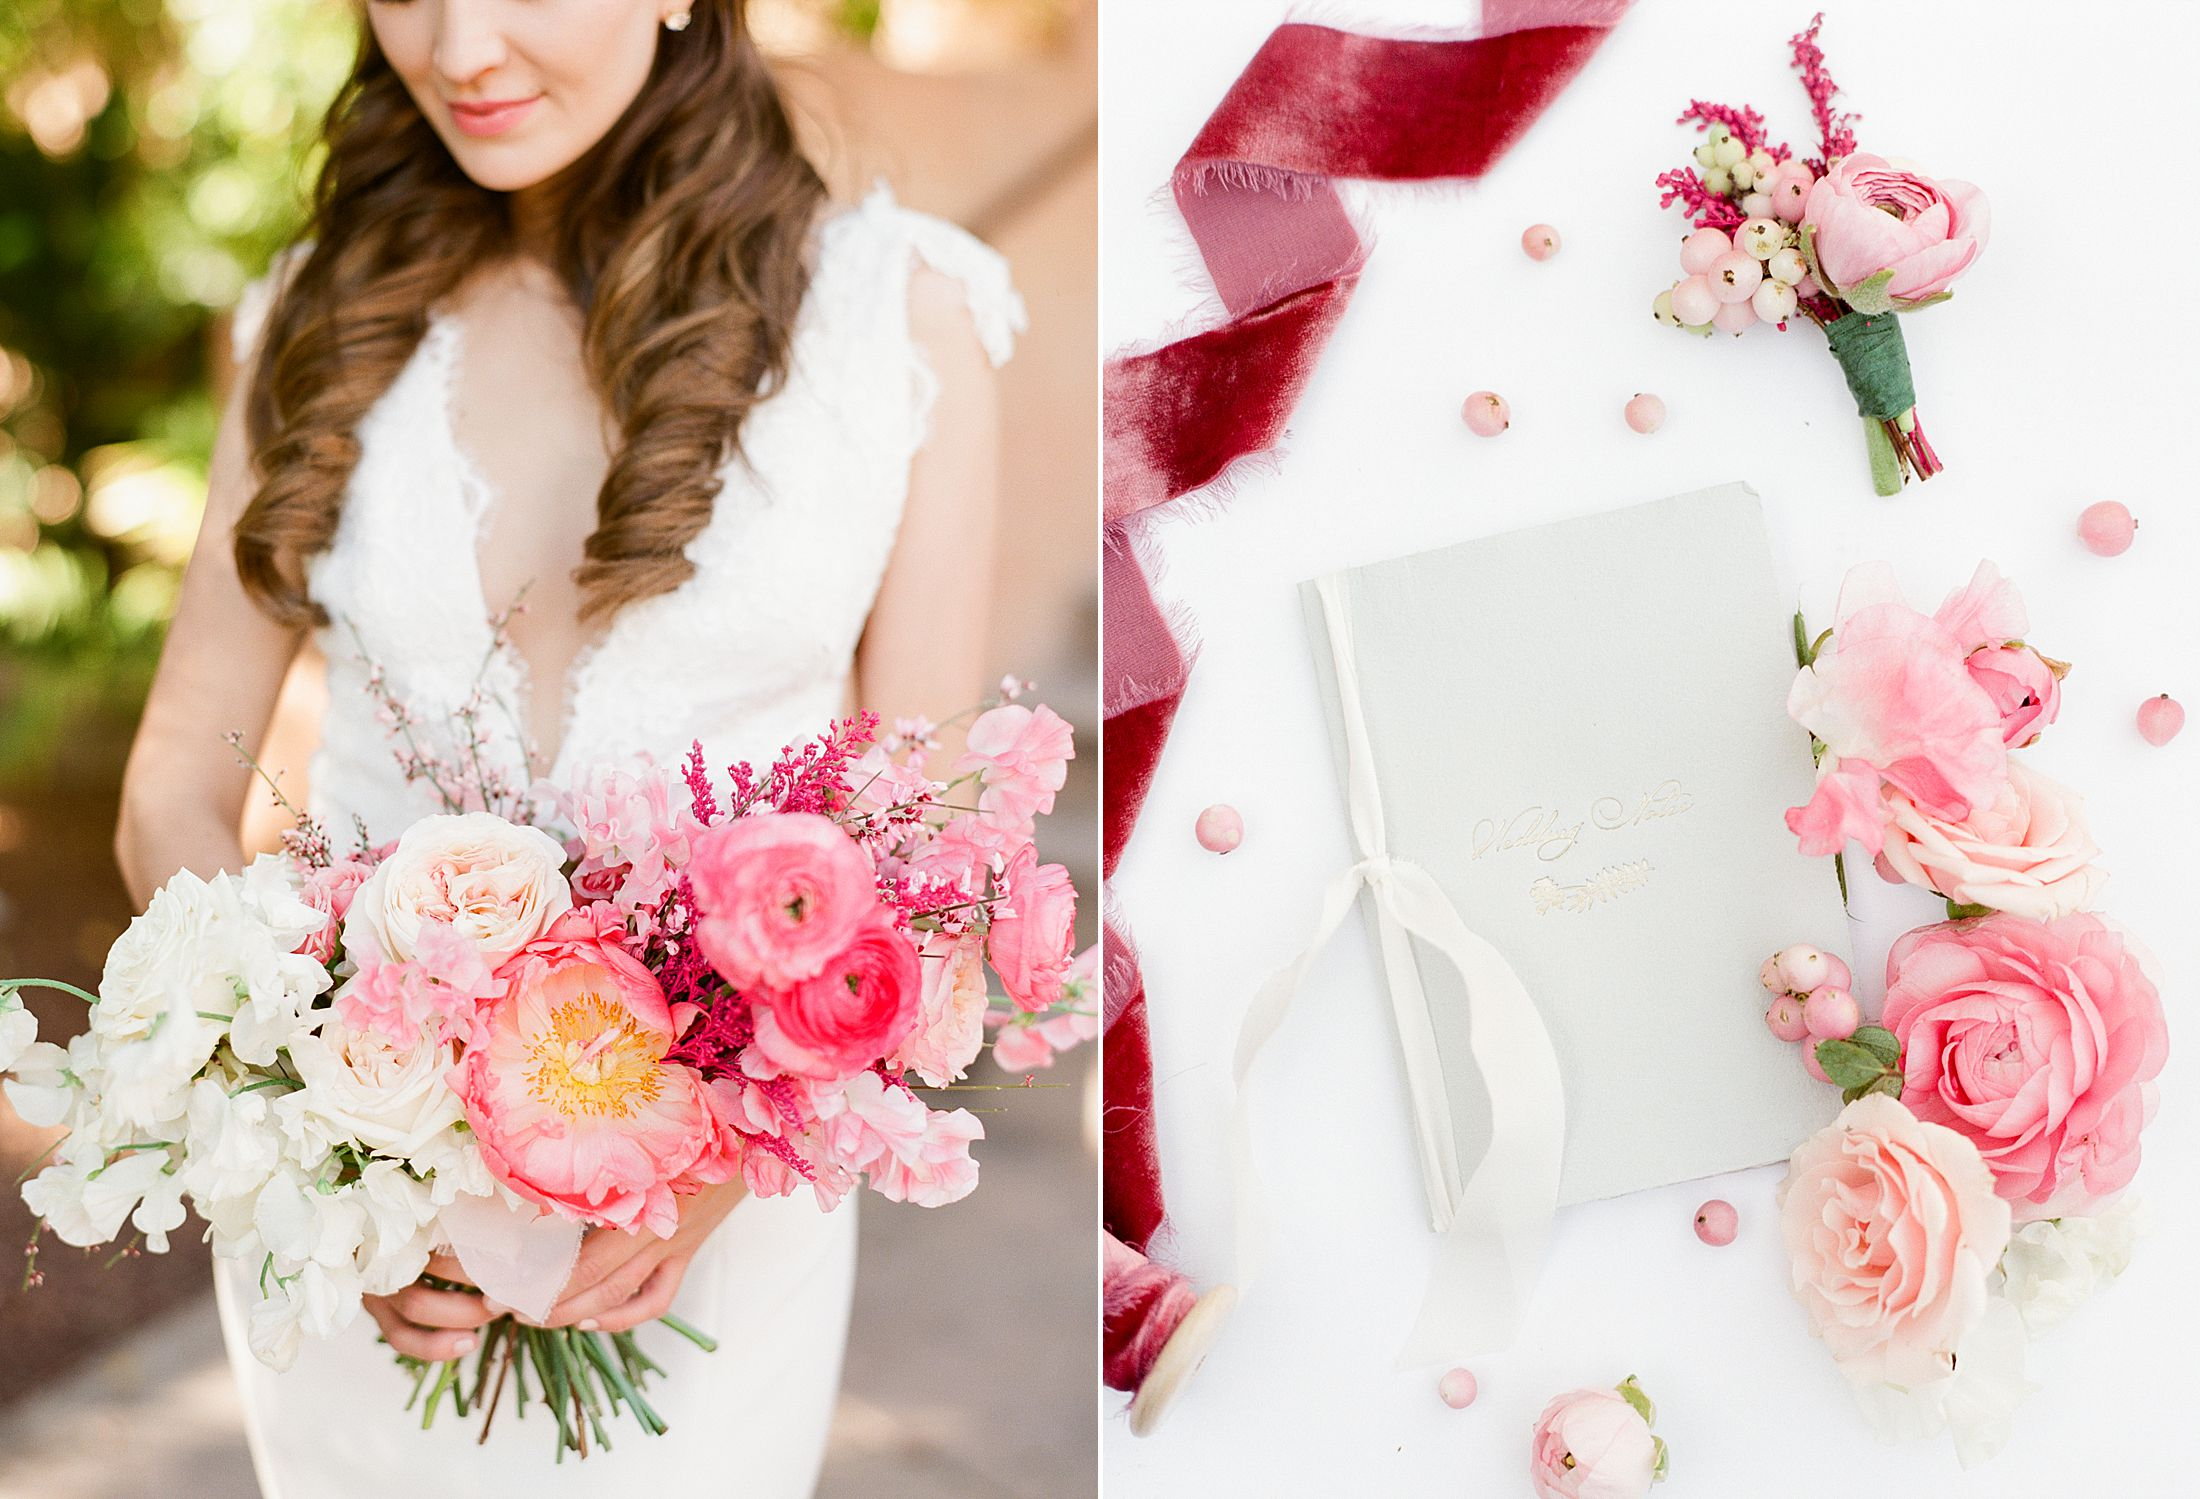 Pink Ombre Wedding Inspiration on Style Me Pretty - Royal Palms Wedding - Scottsdale Wedding - Ashley Baumgartner - Bloom and Blueprint - Wedding Puppies - Bulldog Puppies_0016.jpg